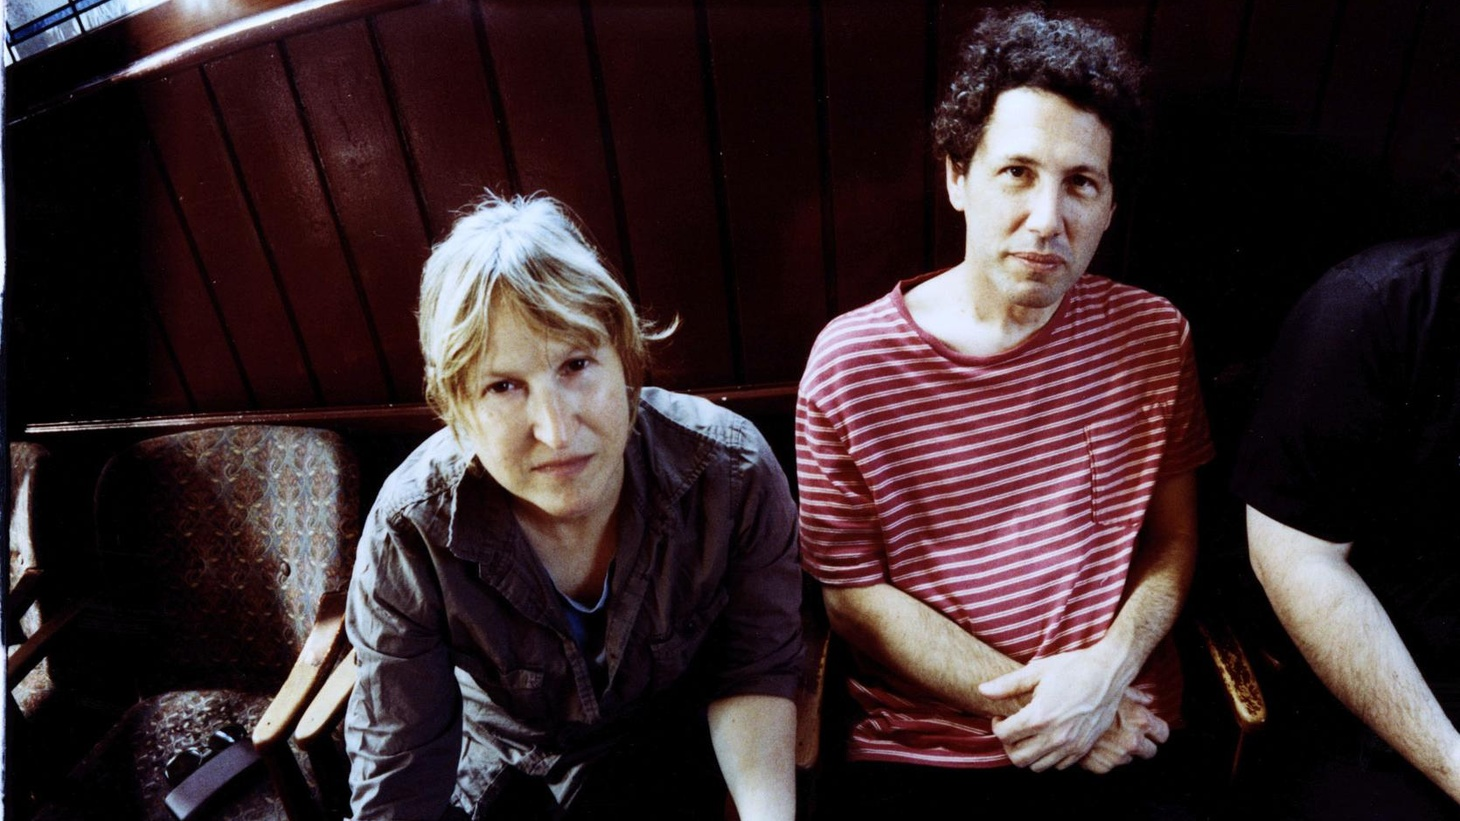 Hoboken's Yo la Tengo have been compared to the Velvet Underground and even played the part in the 1996 film, I Shot Andy Warhol...